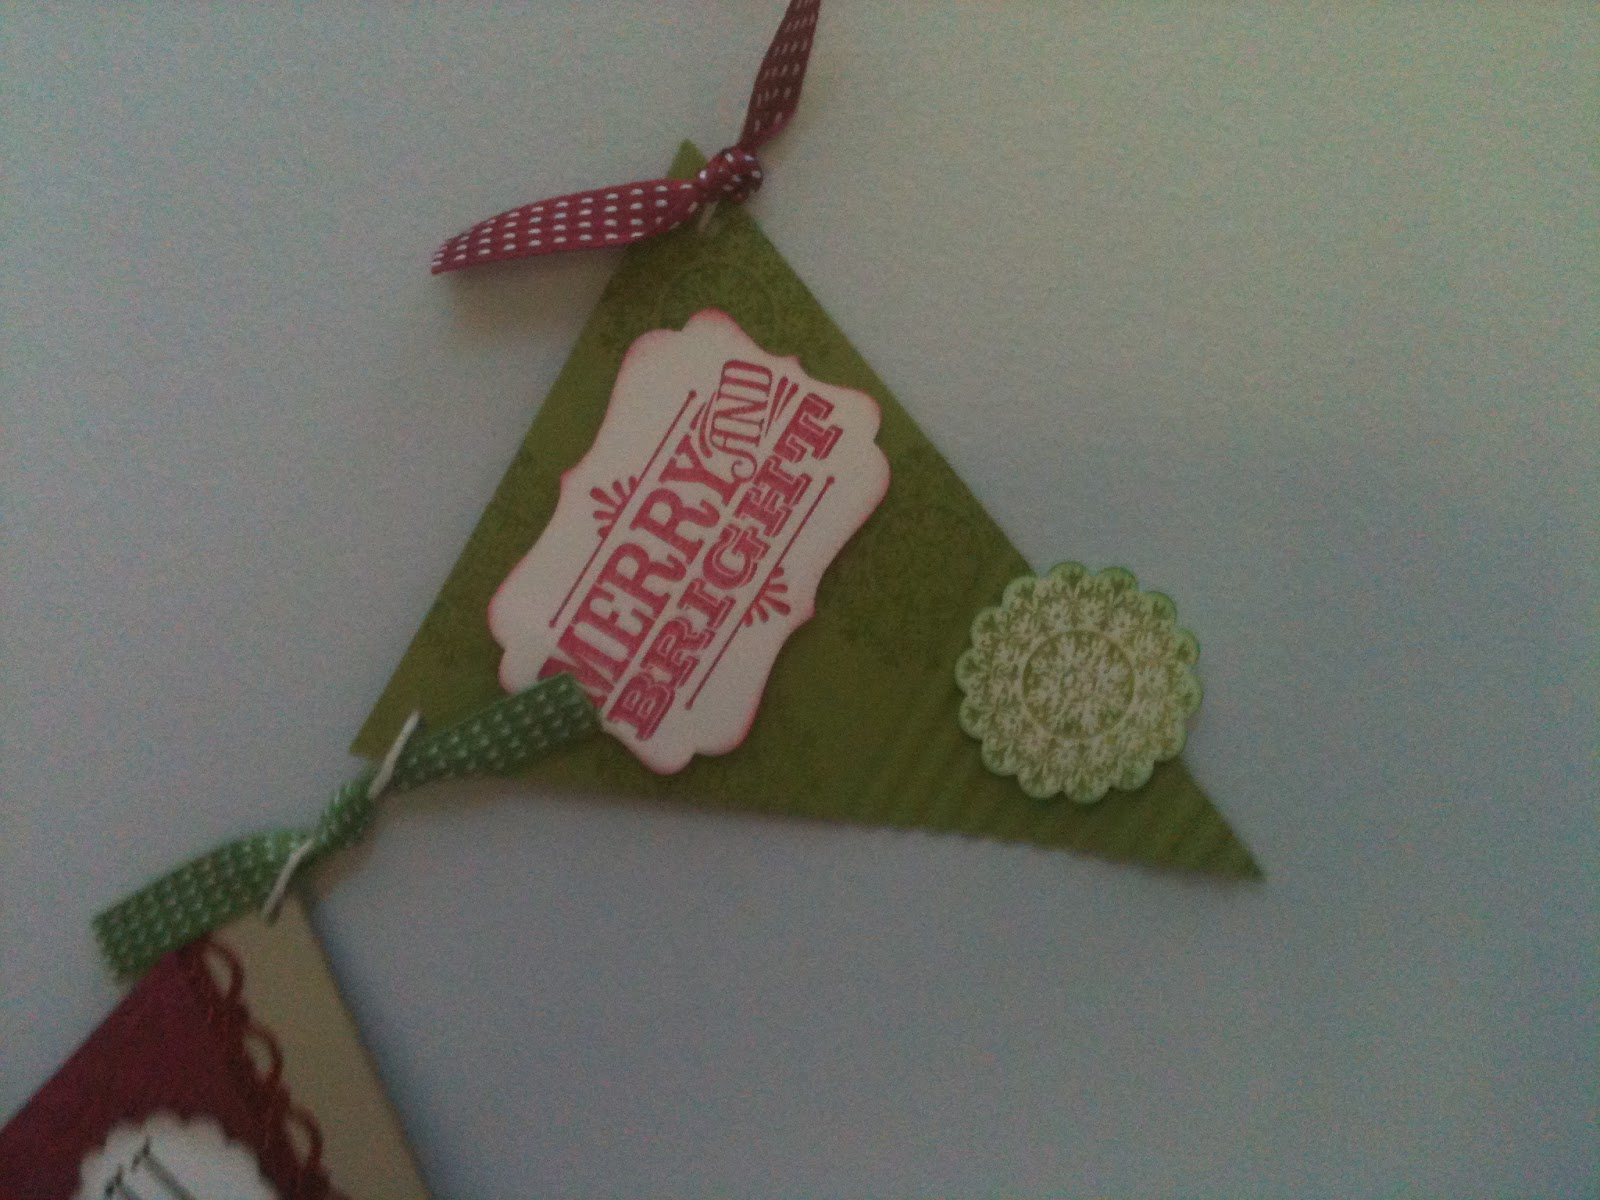 merry and bright stamp on Christmas pennant